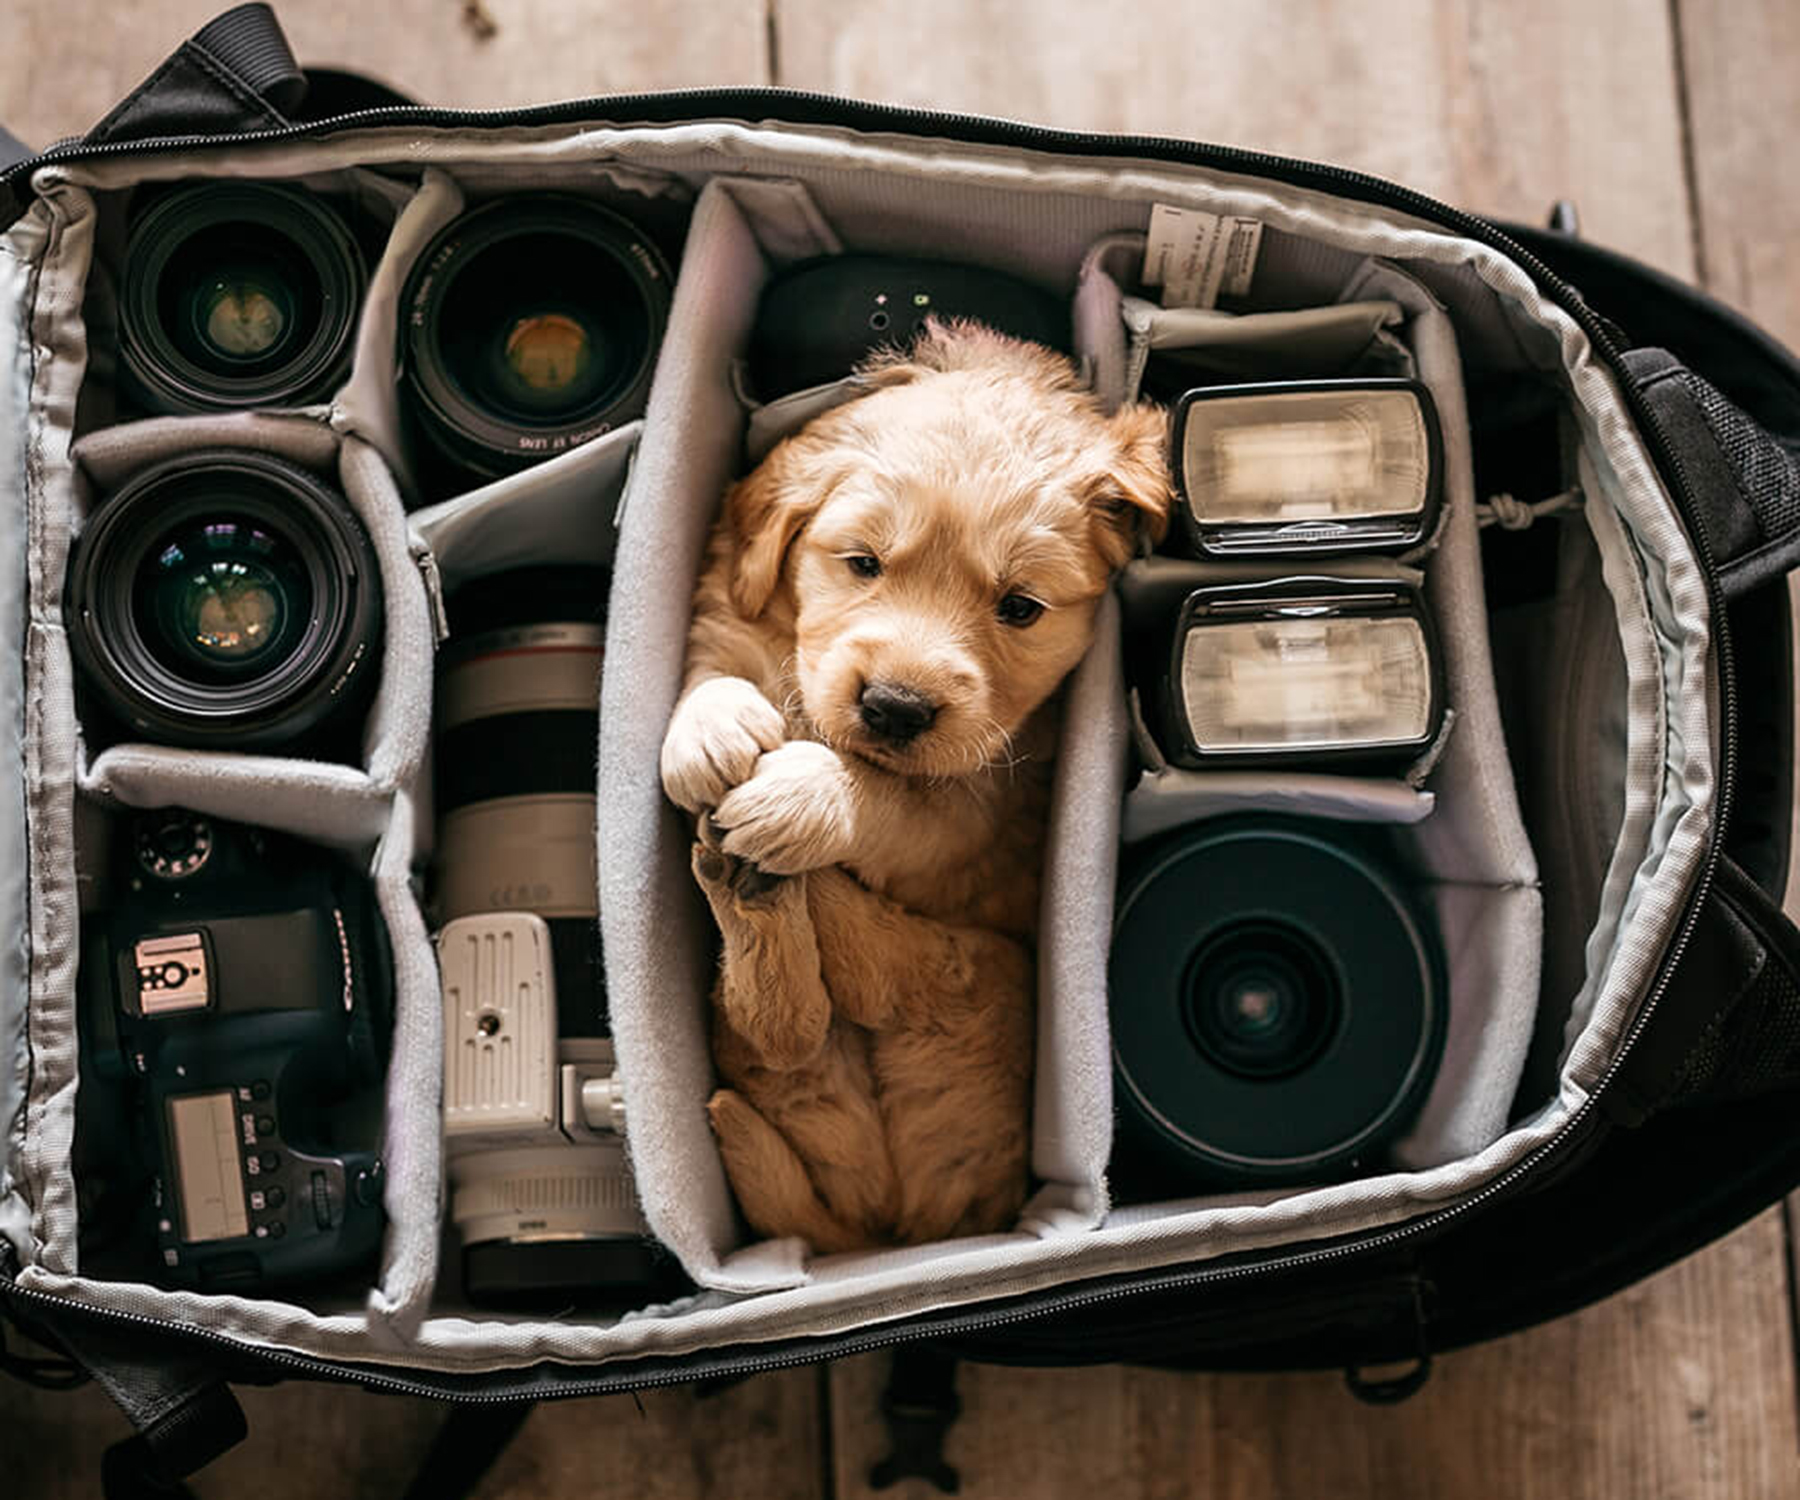 Image of puppy in camera bag by Chris K